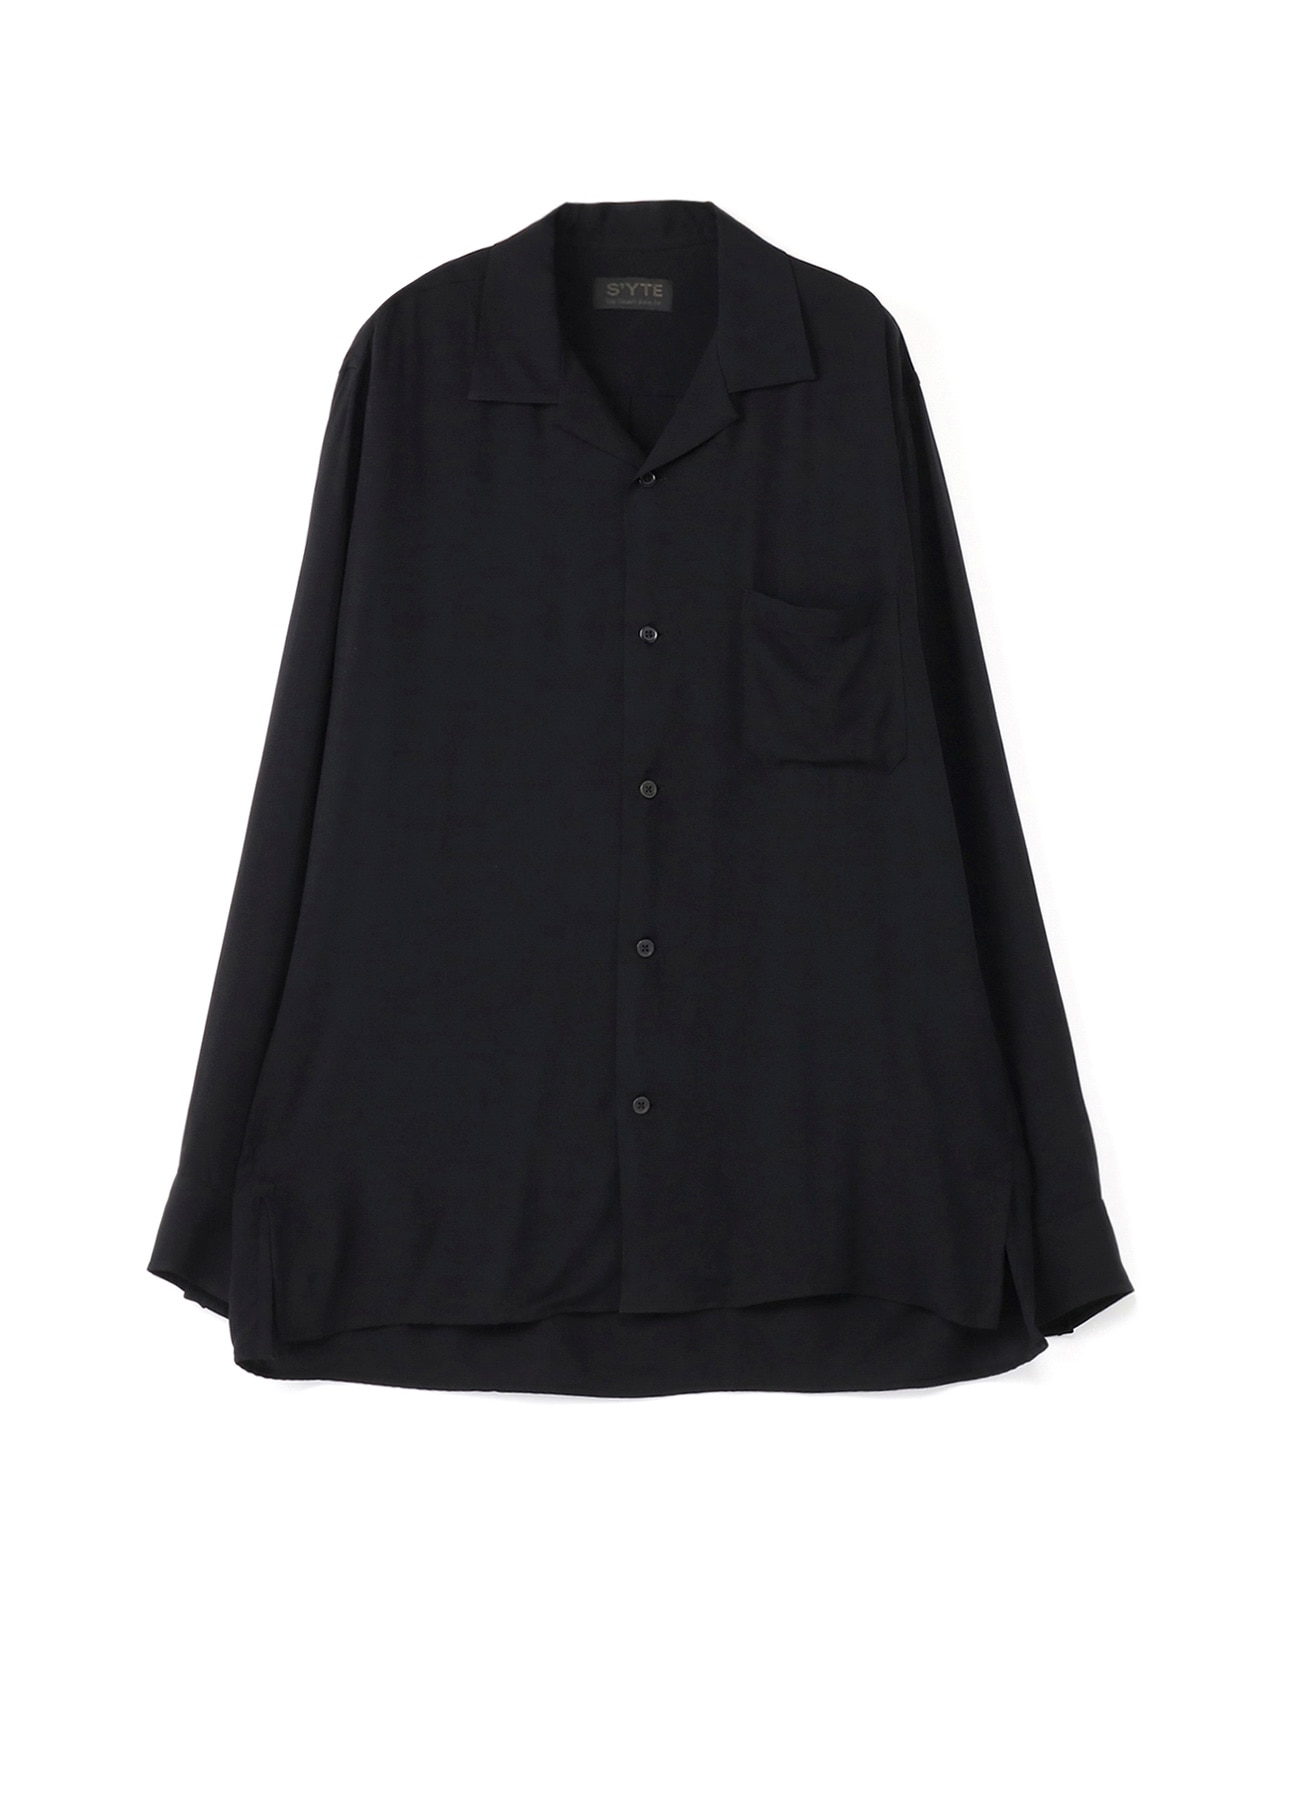 60sRy/Span Twill Washer Open Collar Shirt